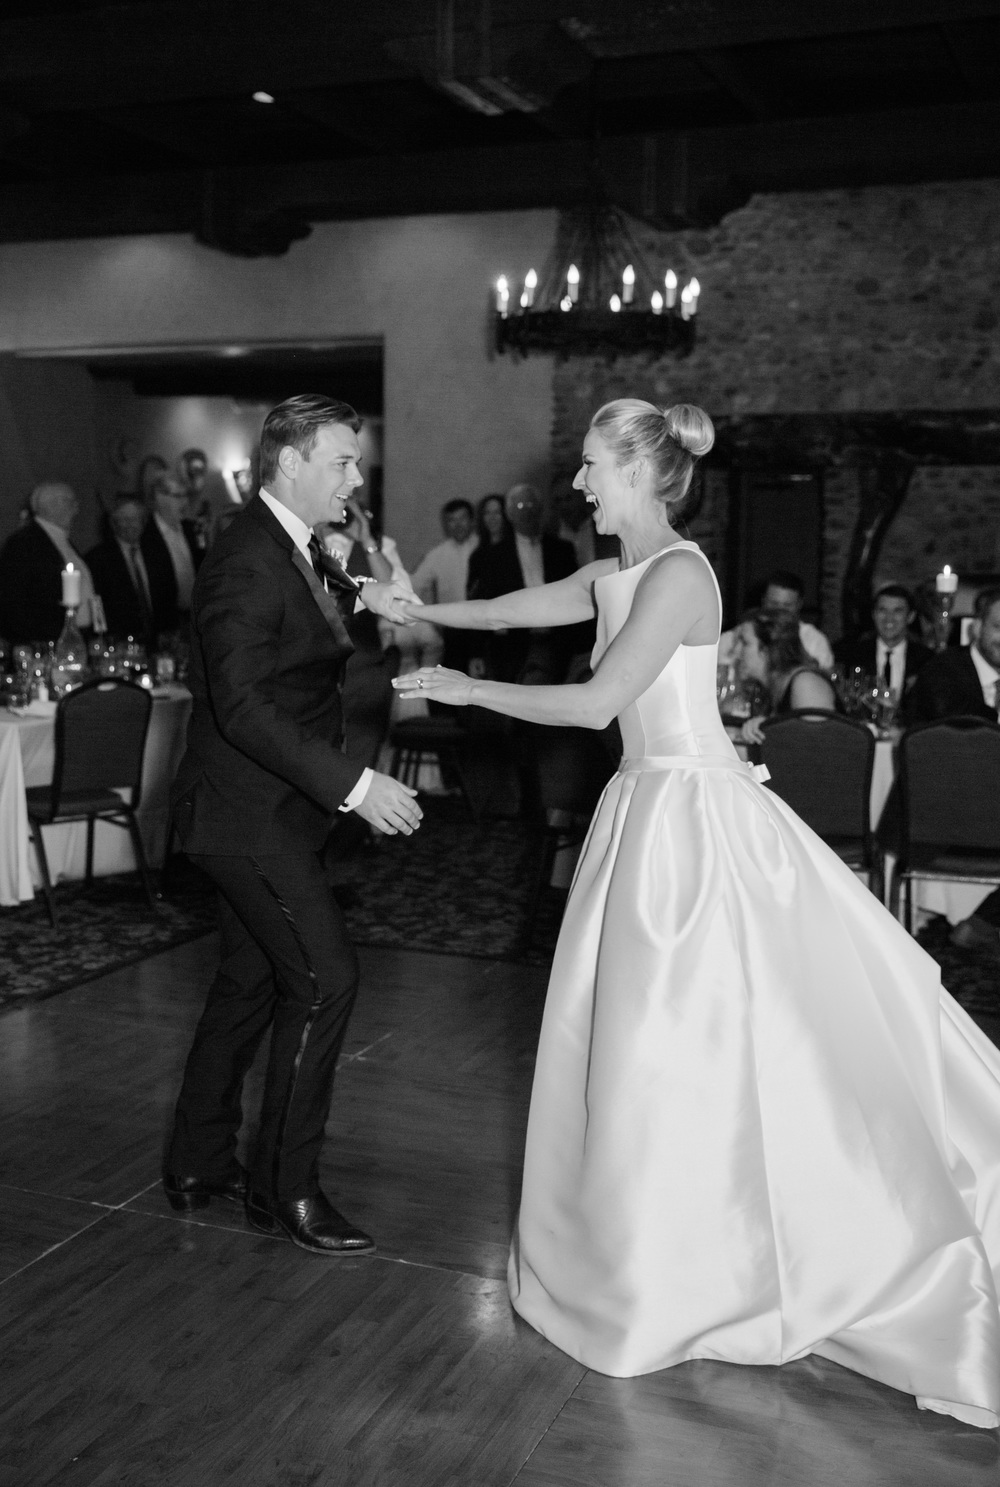 Bride and groom's first dance in black and white